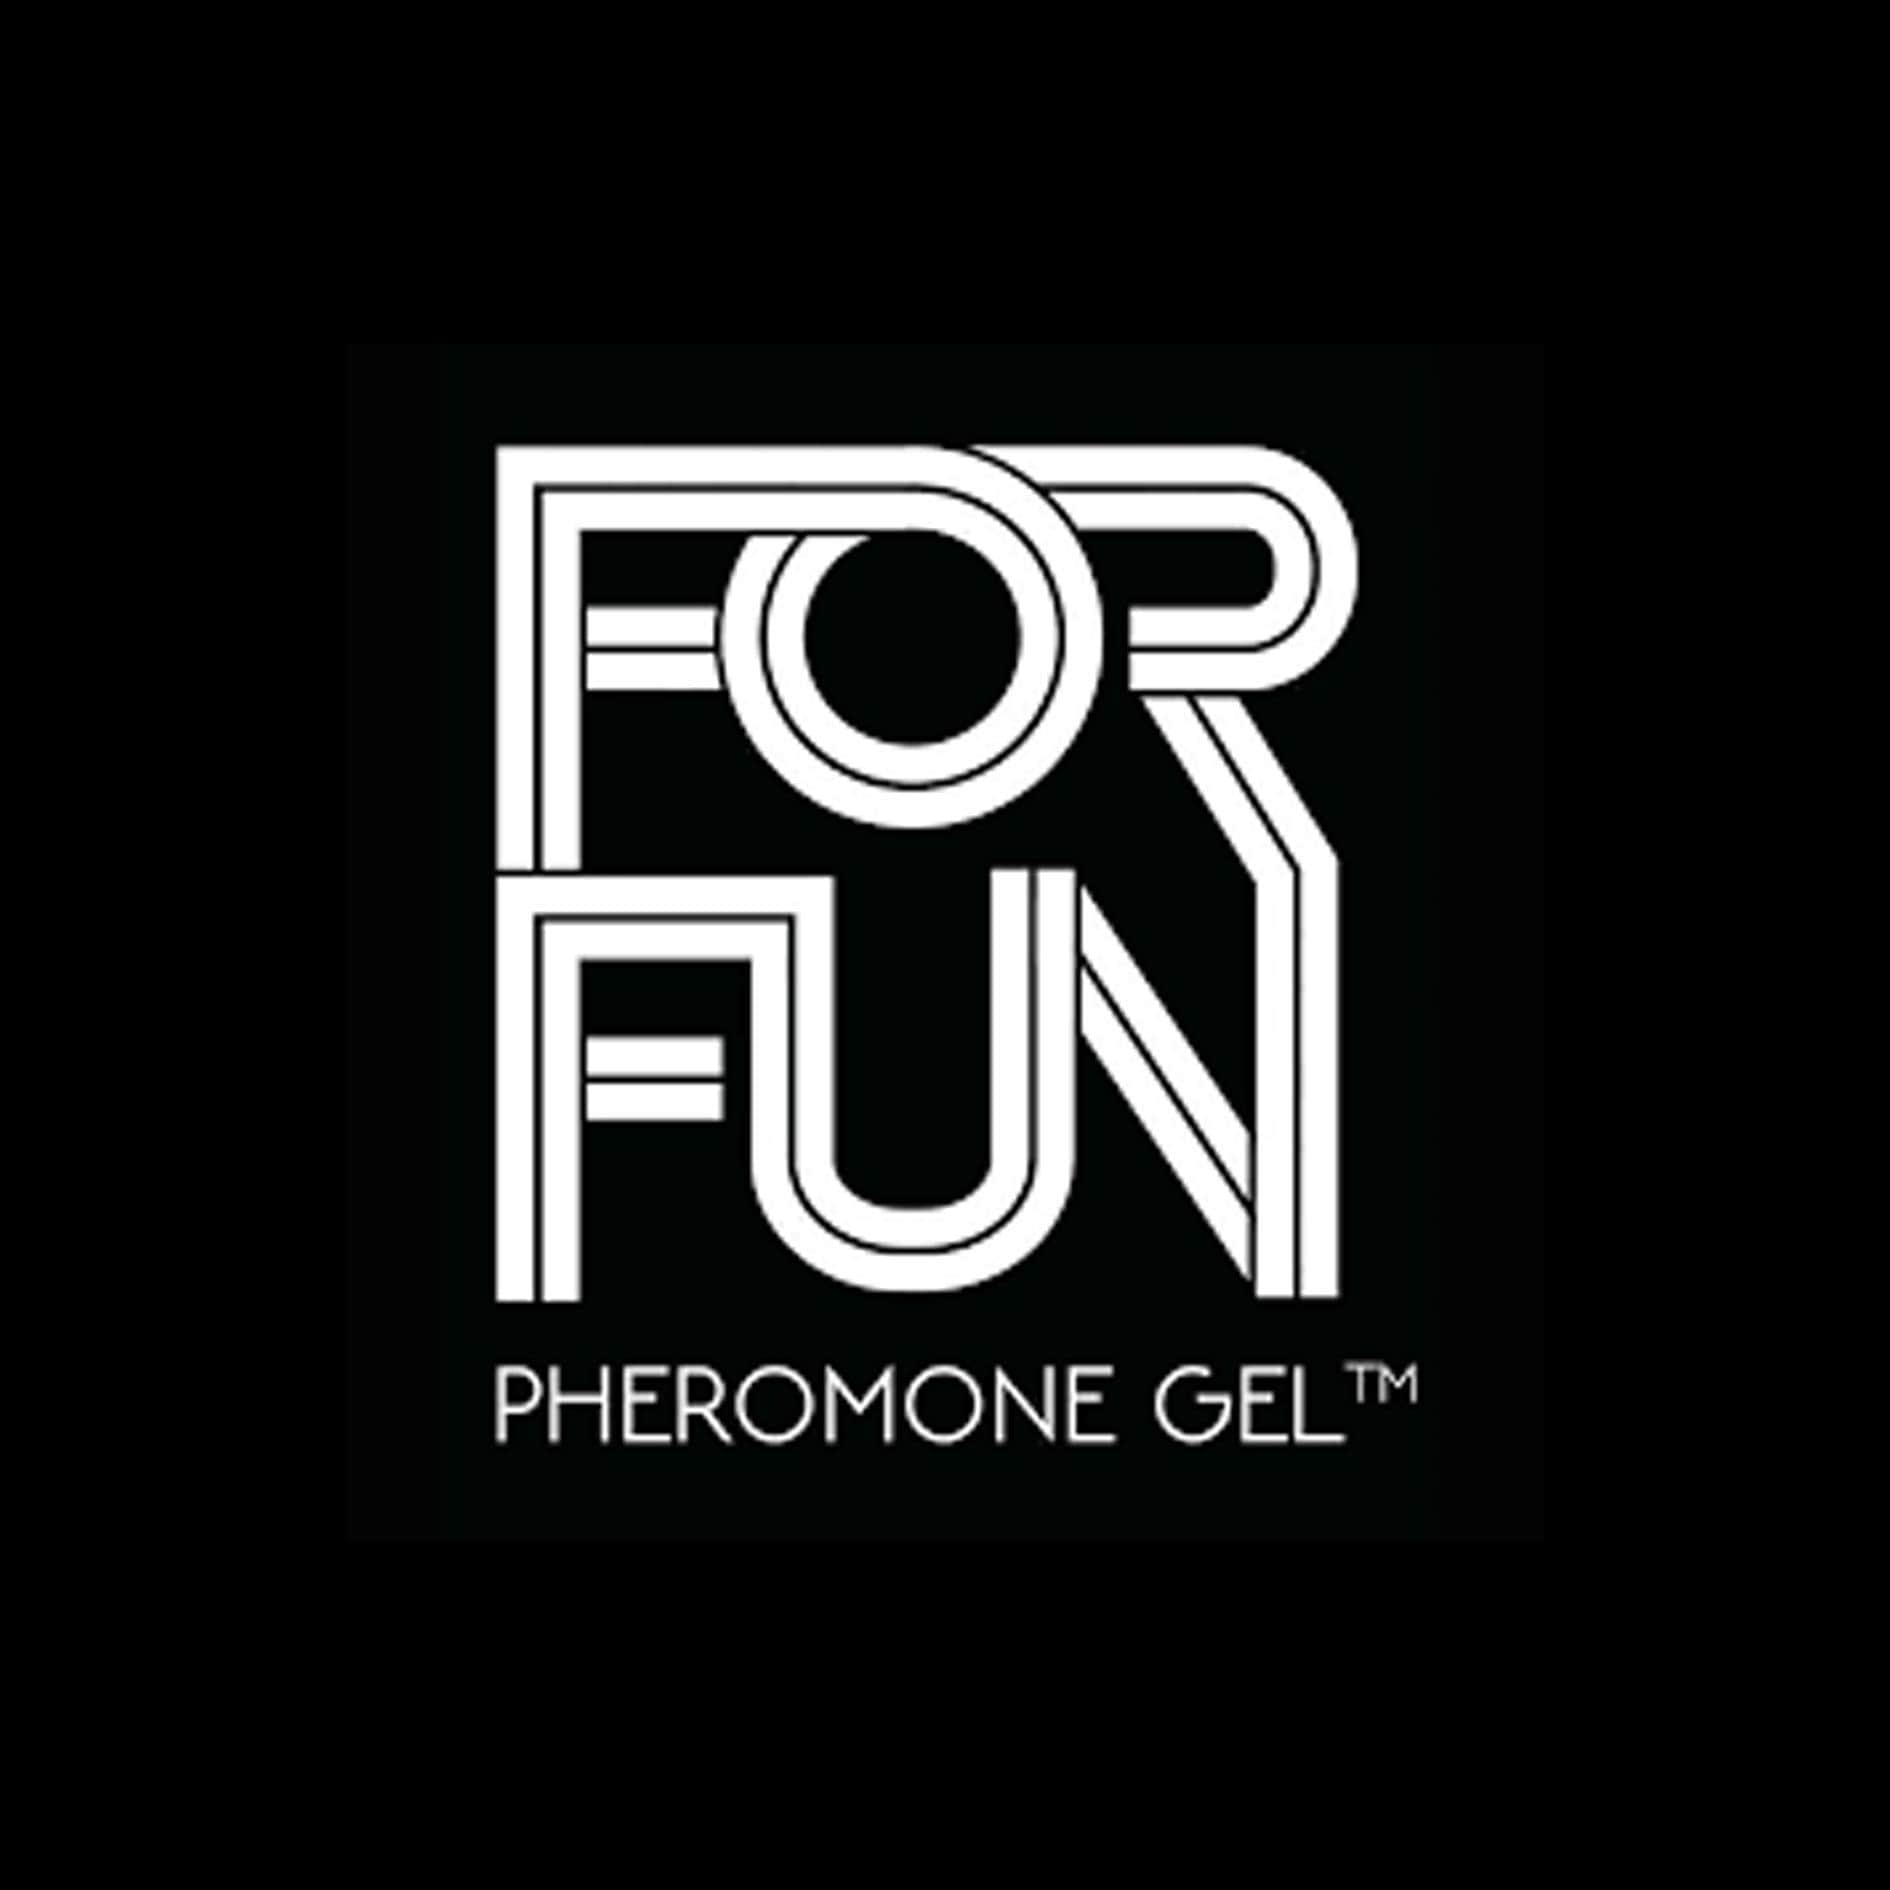 for fun gel